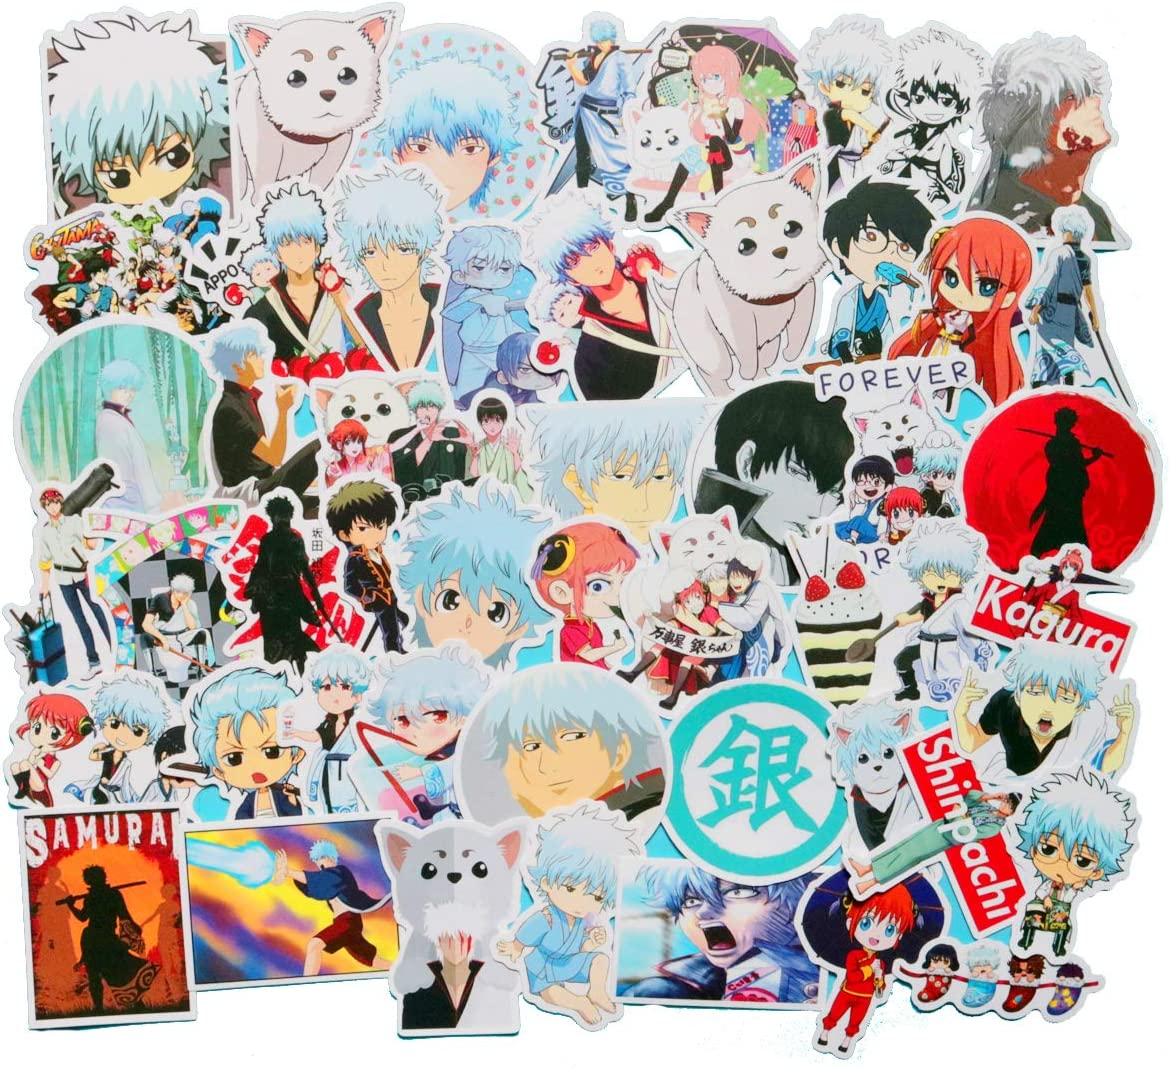 Amazon Com Gintama Sticker Pack Of 50 Stickers Waterproof Durable Stickers Classic Japanese Anime Stickers For Laptops Computers Water Bottles Gintama Arts Crafts Sewing